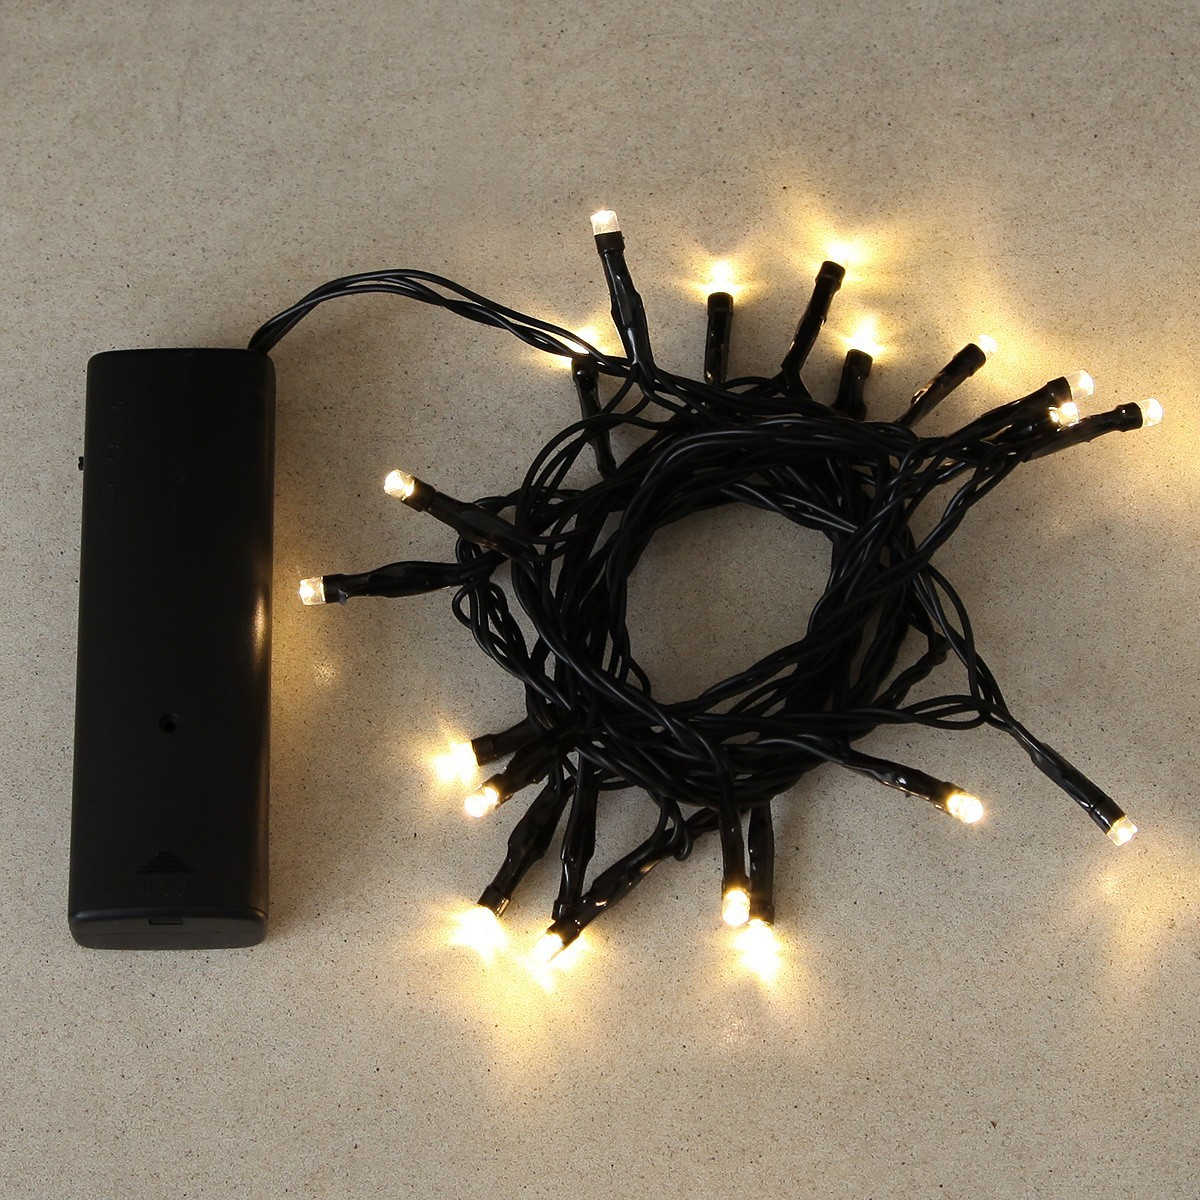 2m Indoor Battery Fairy Lights, 20 LEDs, Black Cable